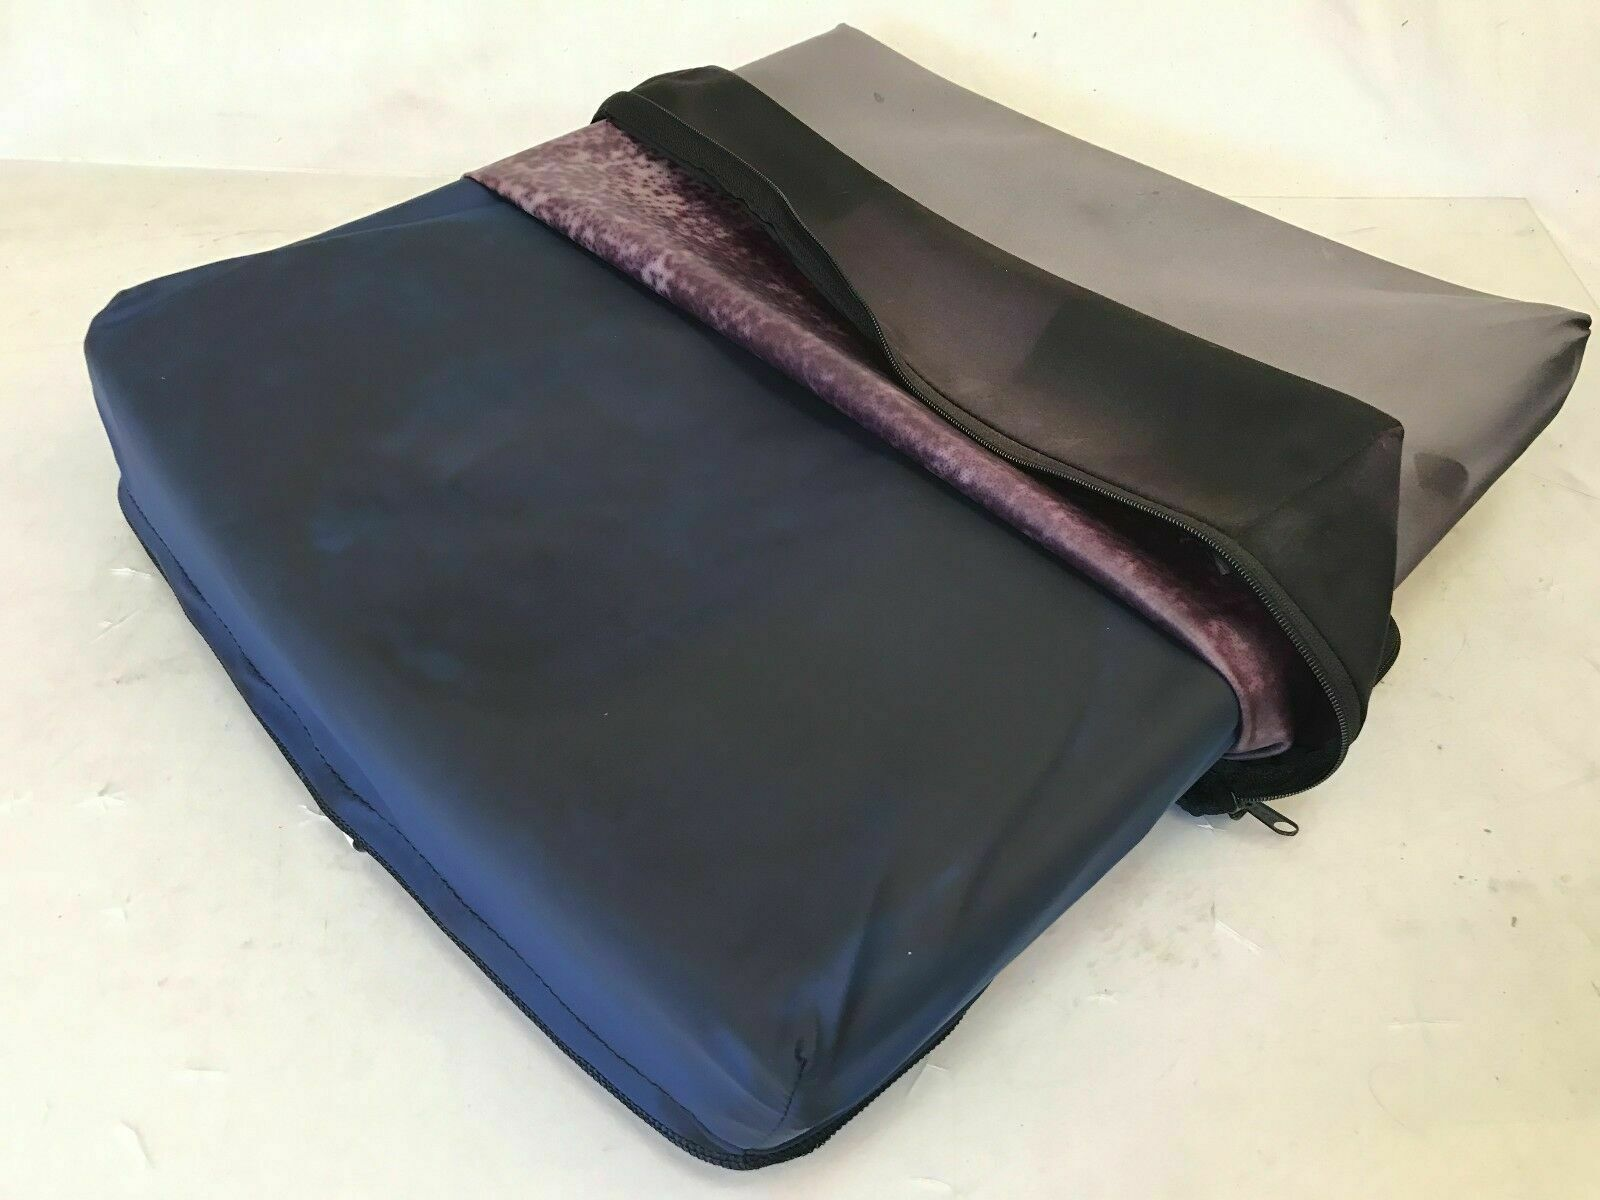 Invacare - Infinity LC Seat Cushion - 18x18 for Wheelchairs image 2